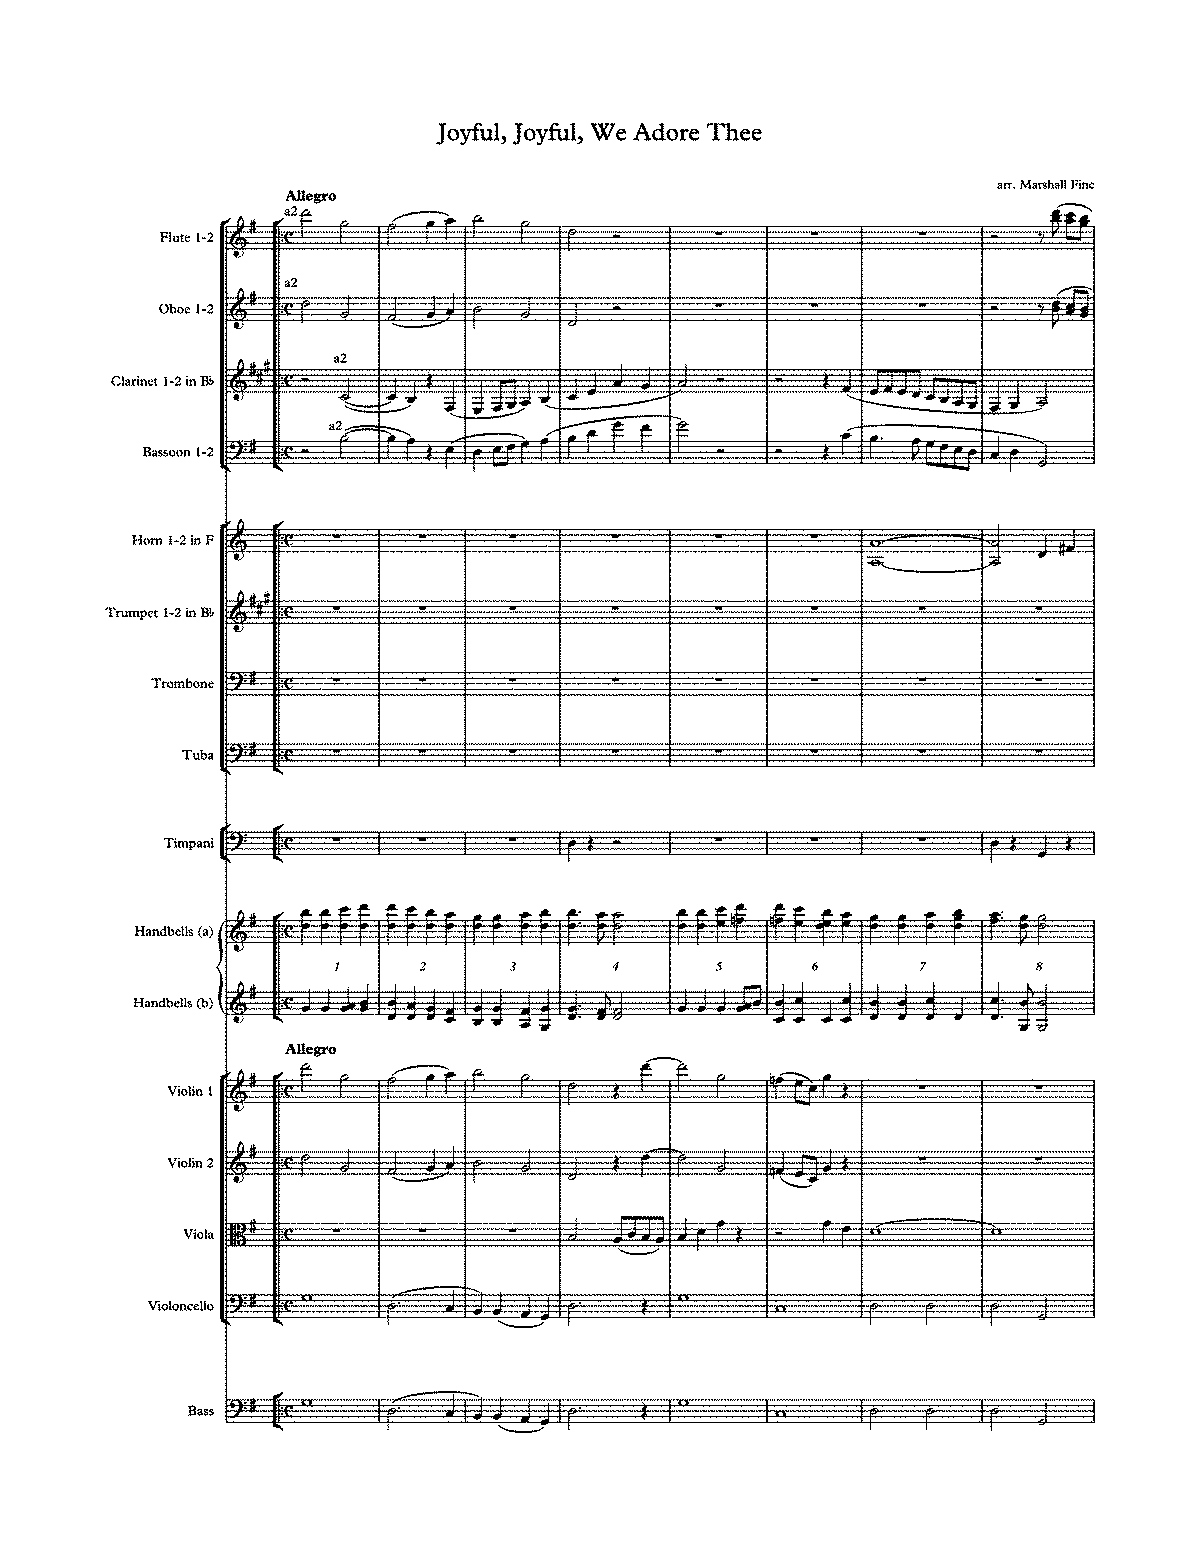 PMLP550715-Handbell Joyful, Joyful, We Adore Thee - score and parts.pdf